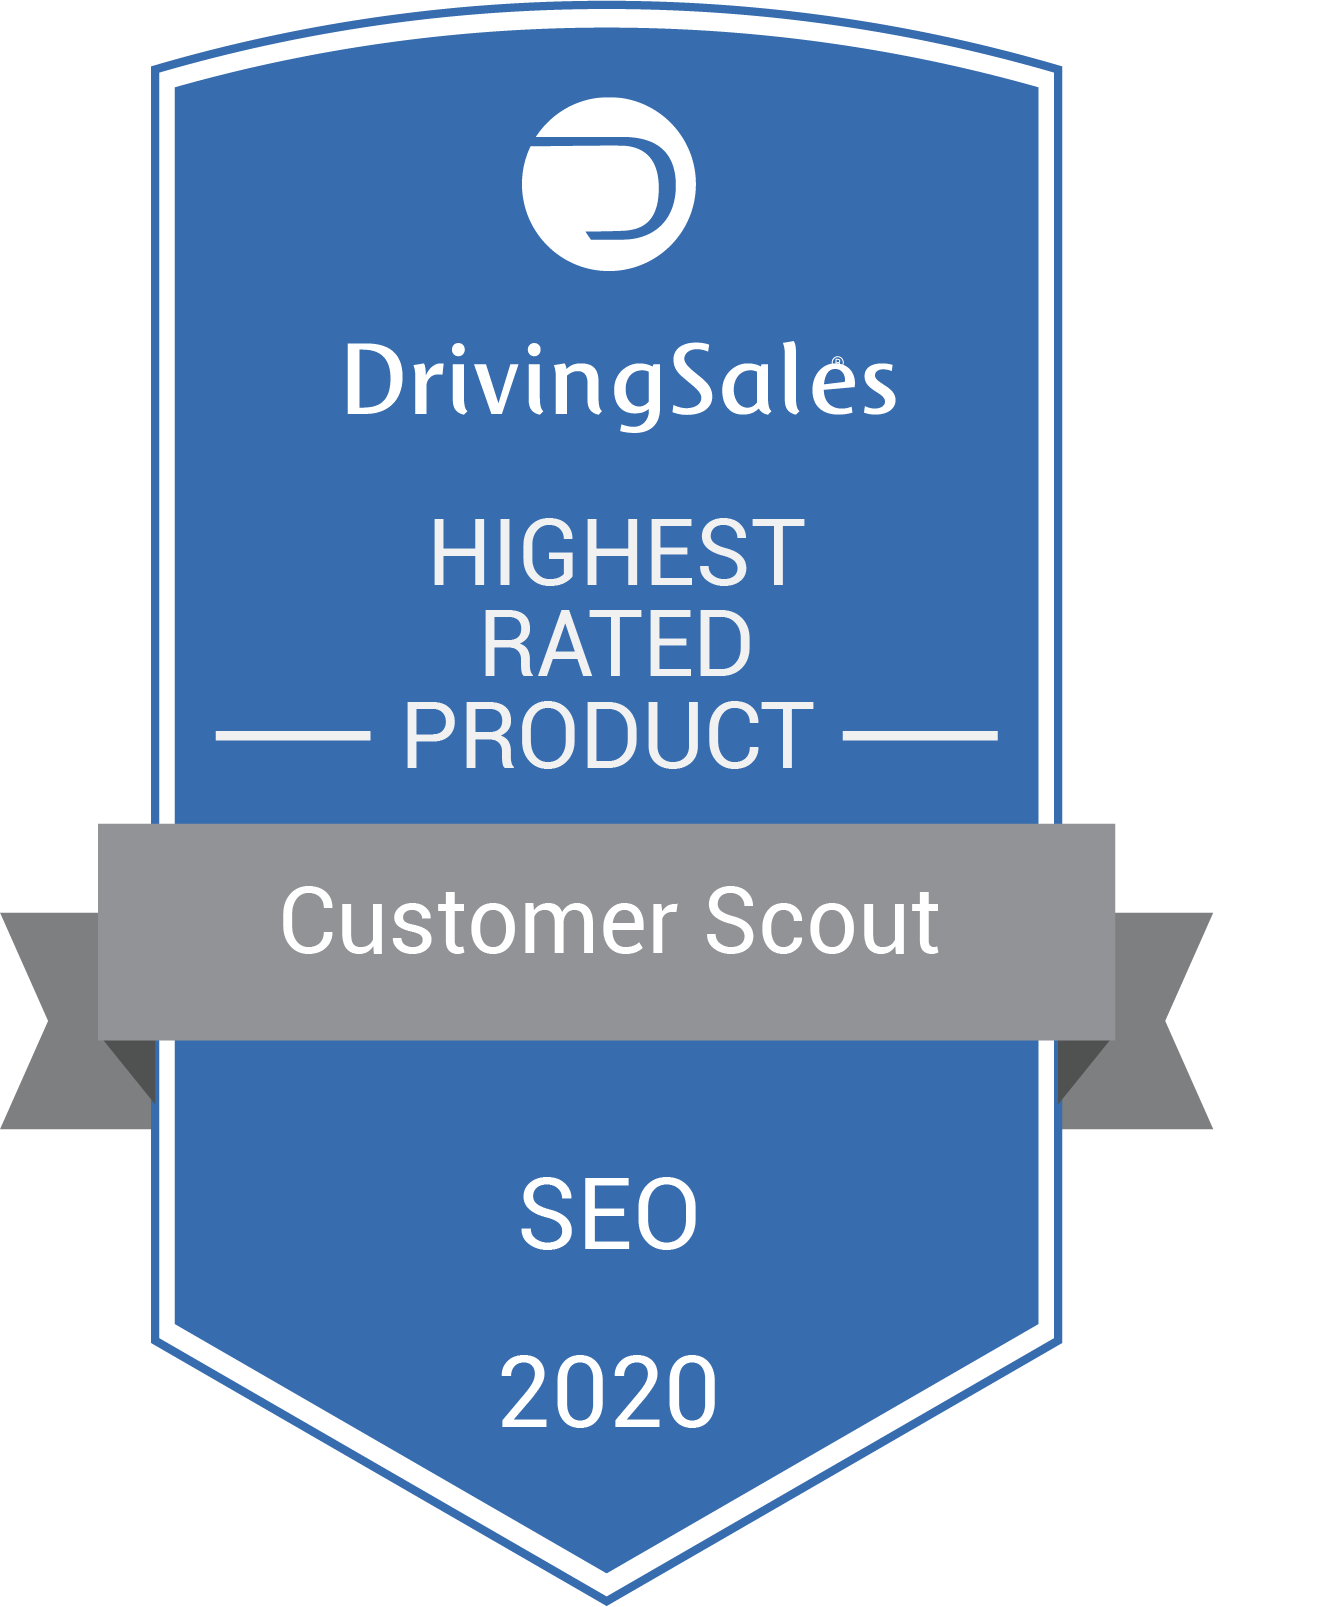 Customer scout driving sales seo vendor